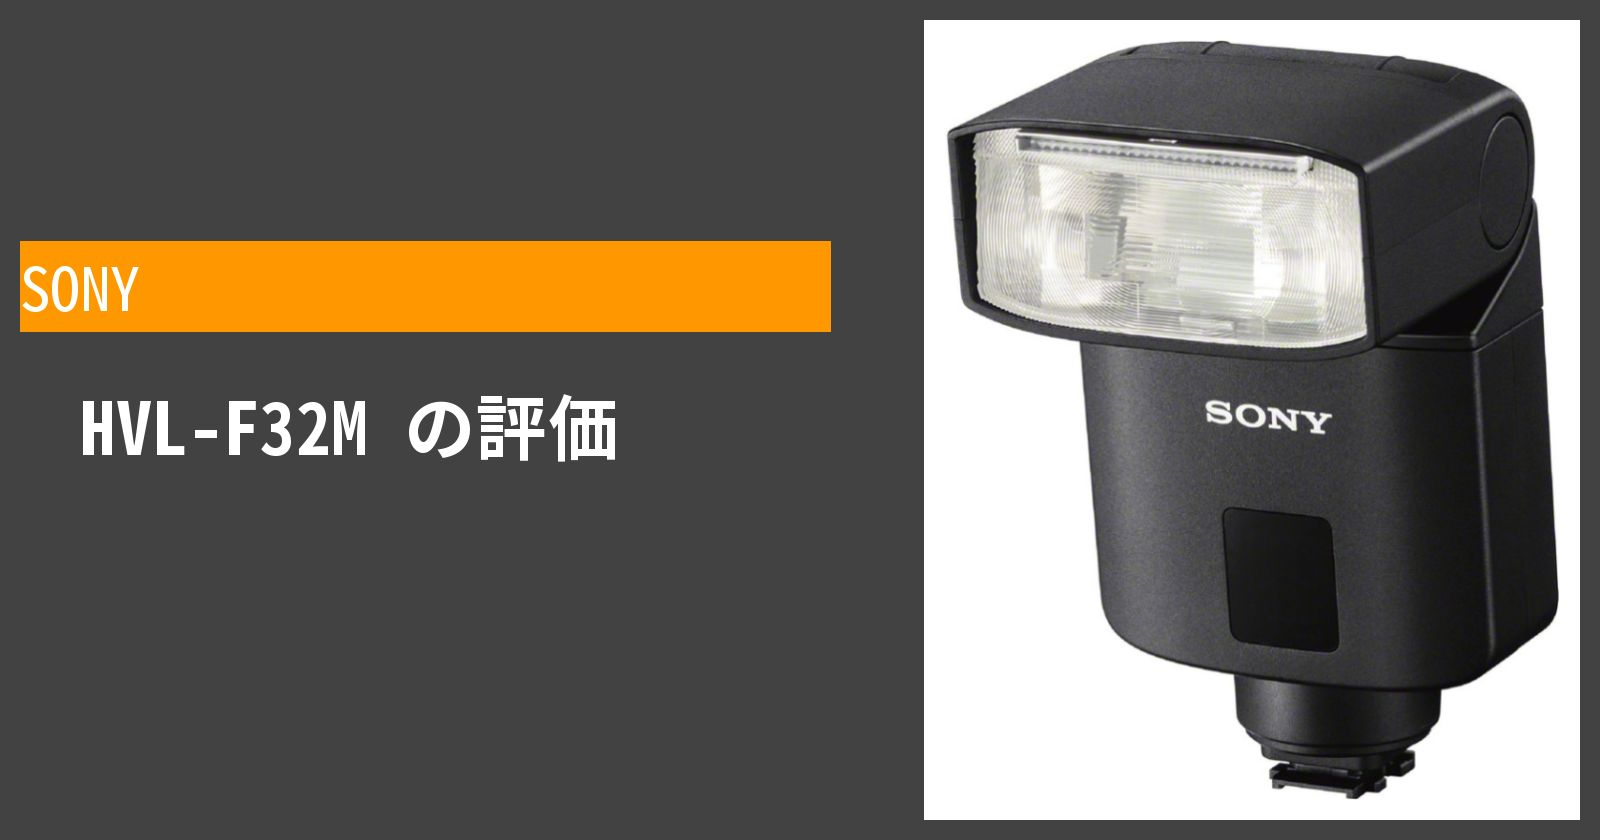 HVL-F32Mを徹底評価